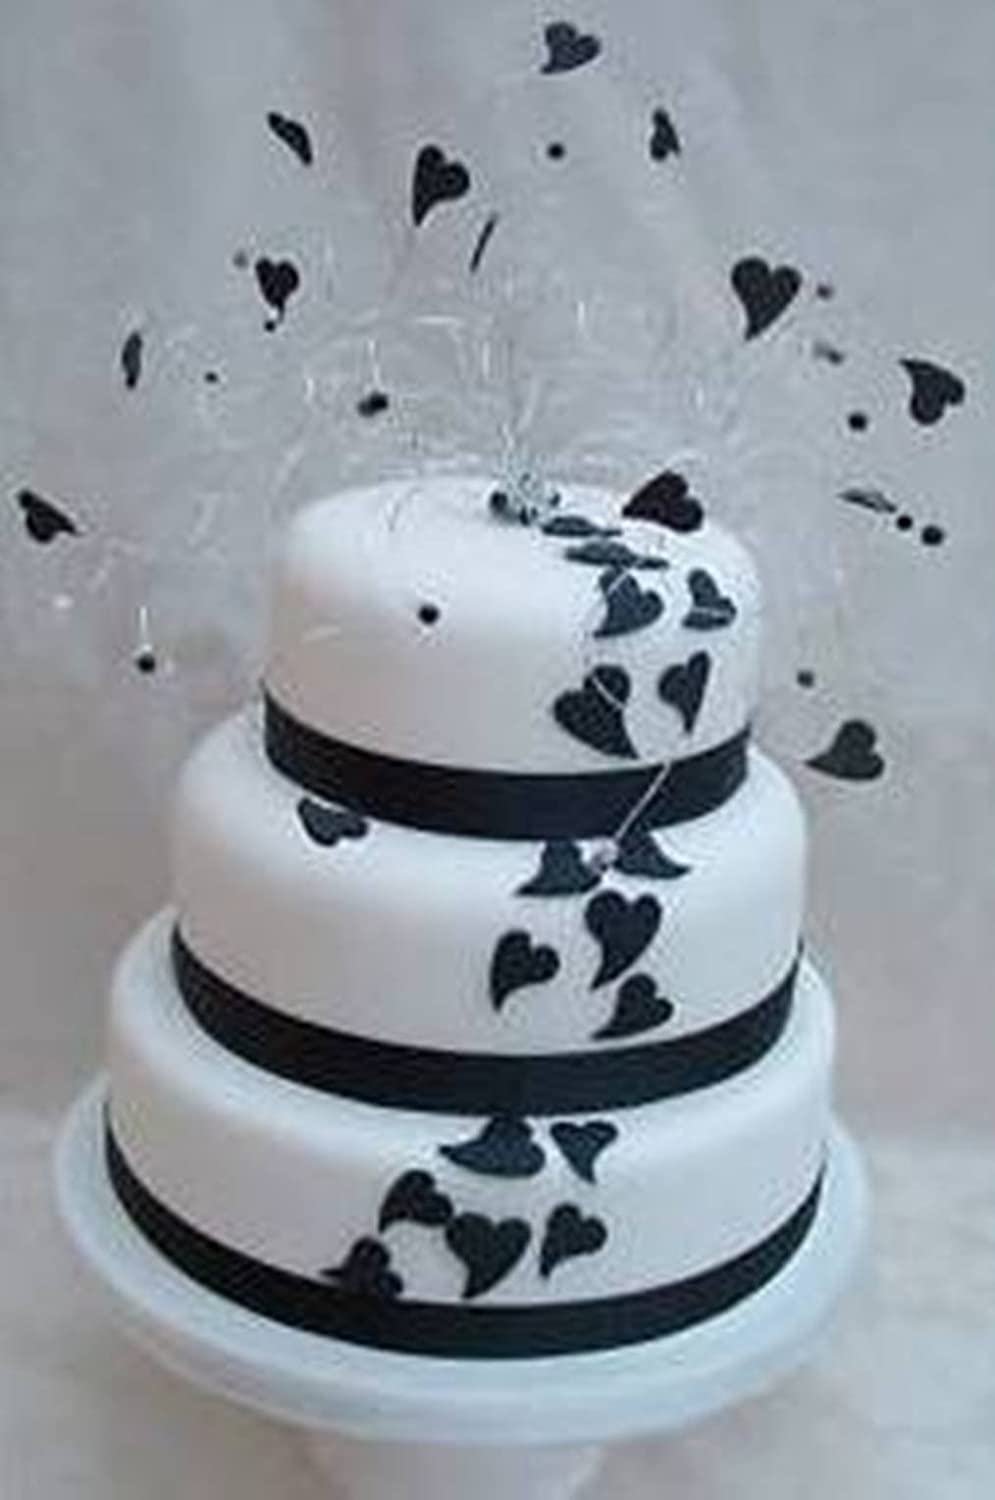 Black Heart Twisted Wire Wedding Engagement Cake Topper: Amazon.co ...